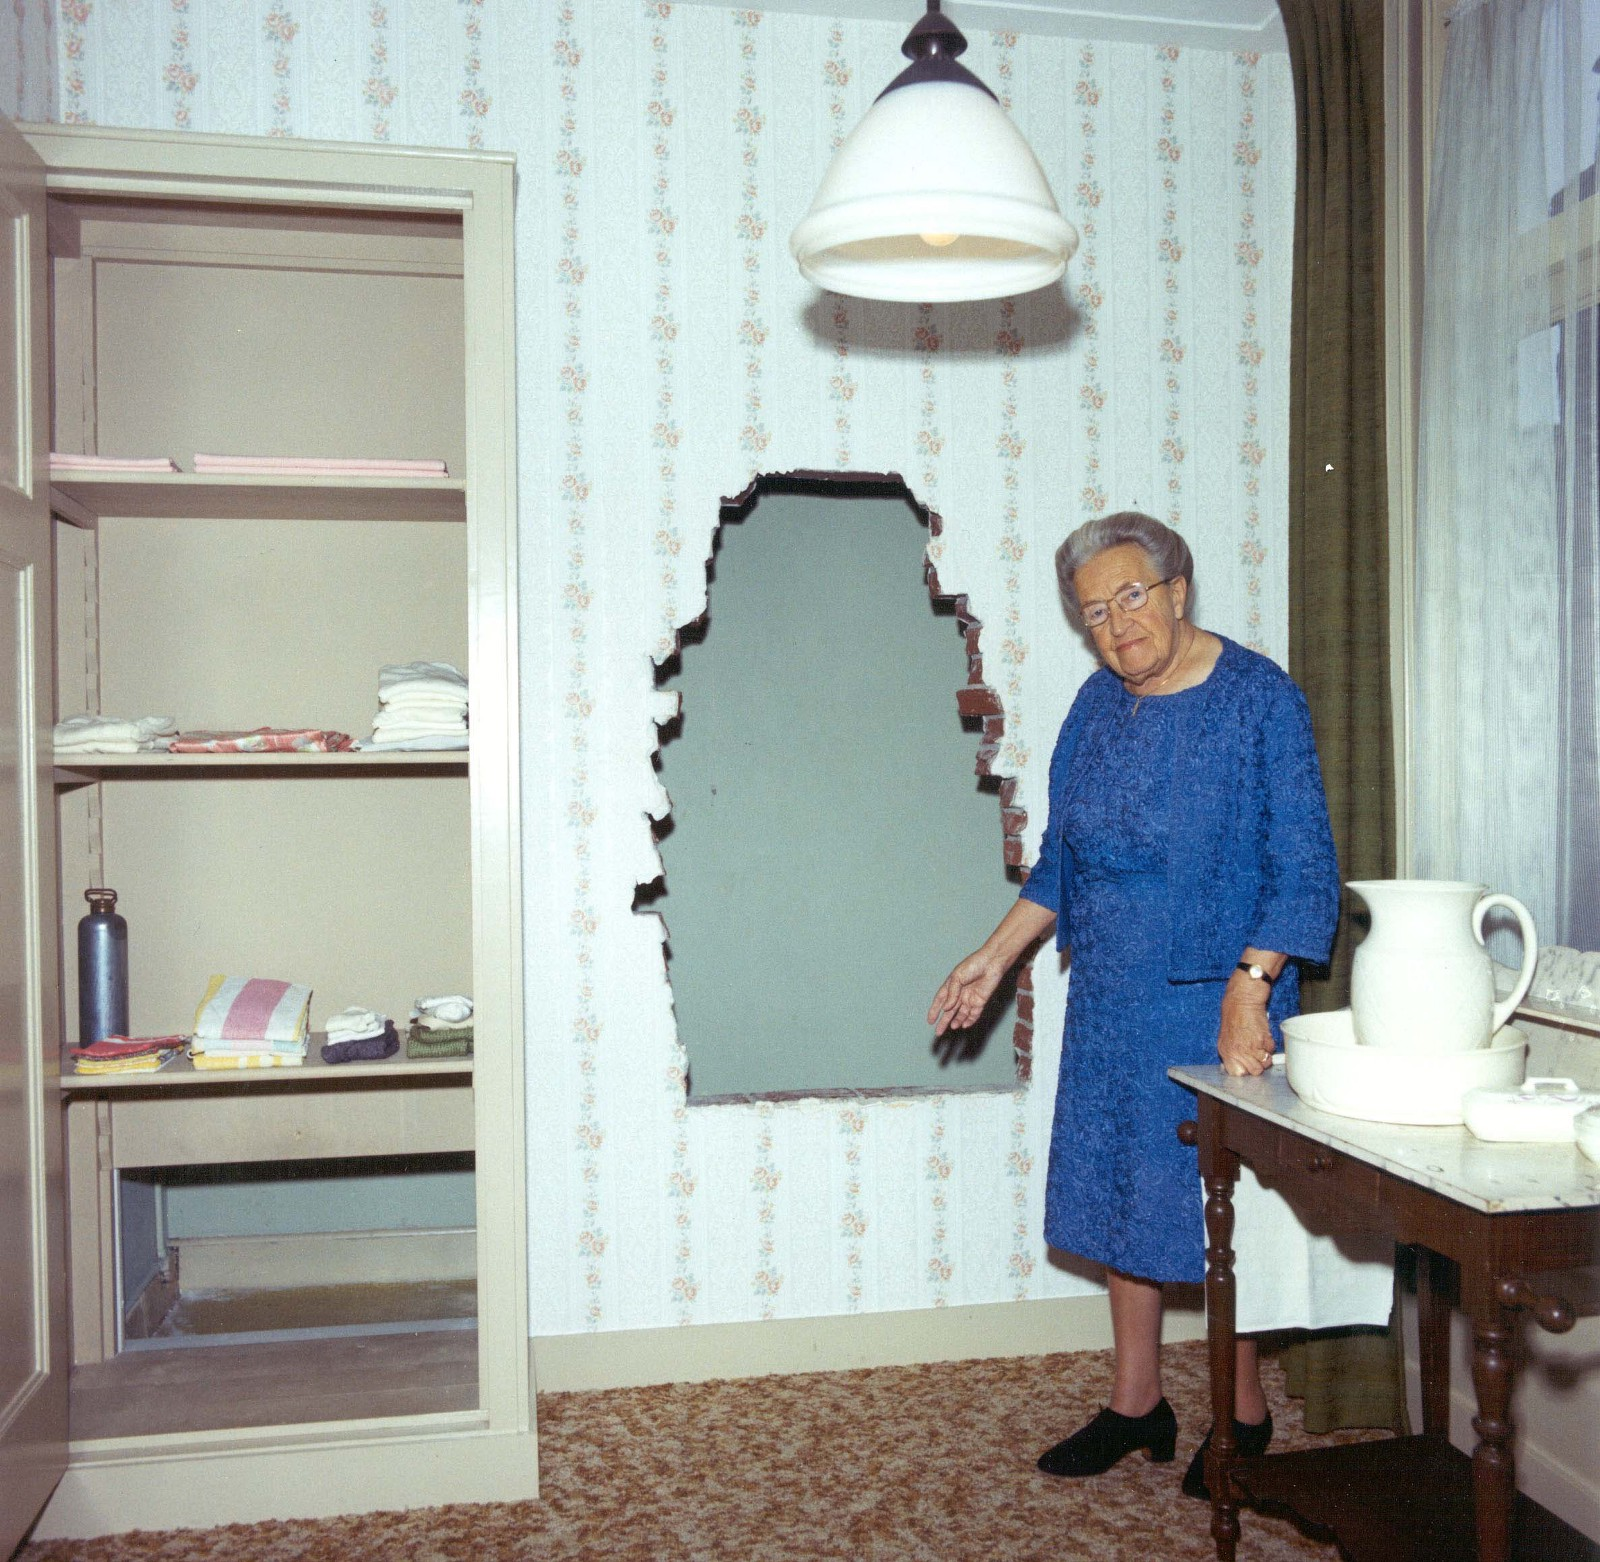 Corrie Ten Boom And The Hiding Place In Her Room Source Yad Vashem World Holocaust Remembrance Center